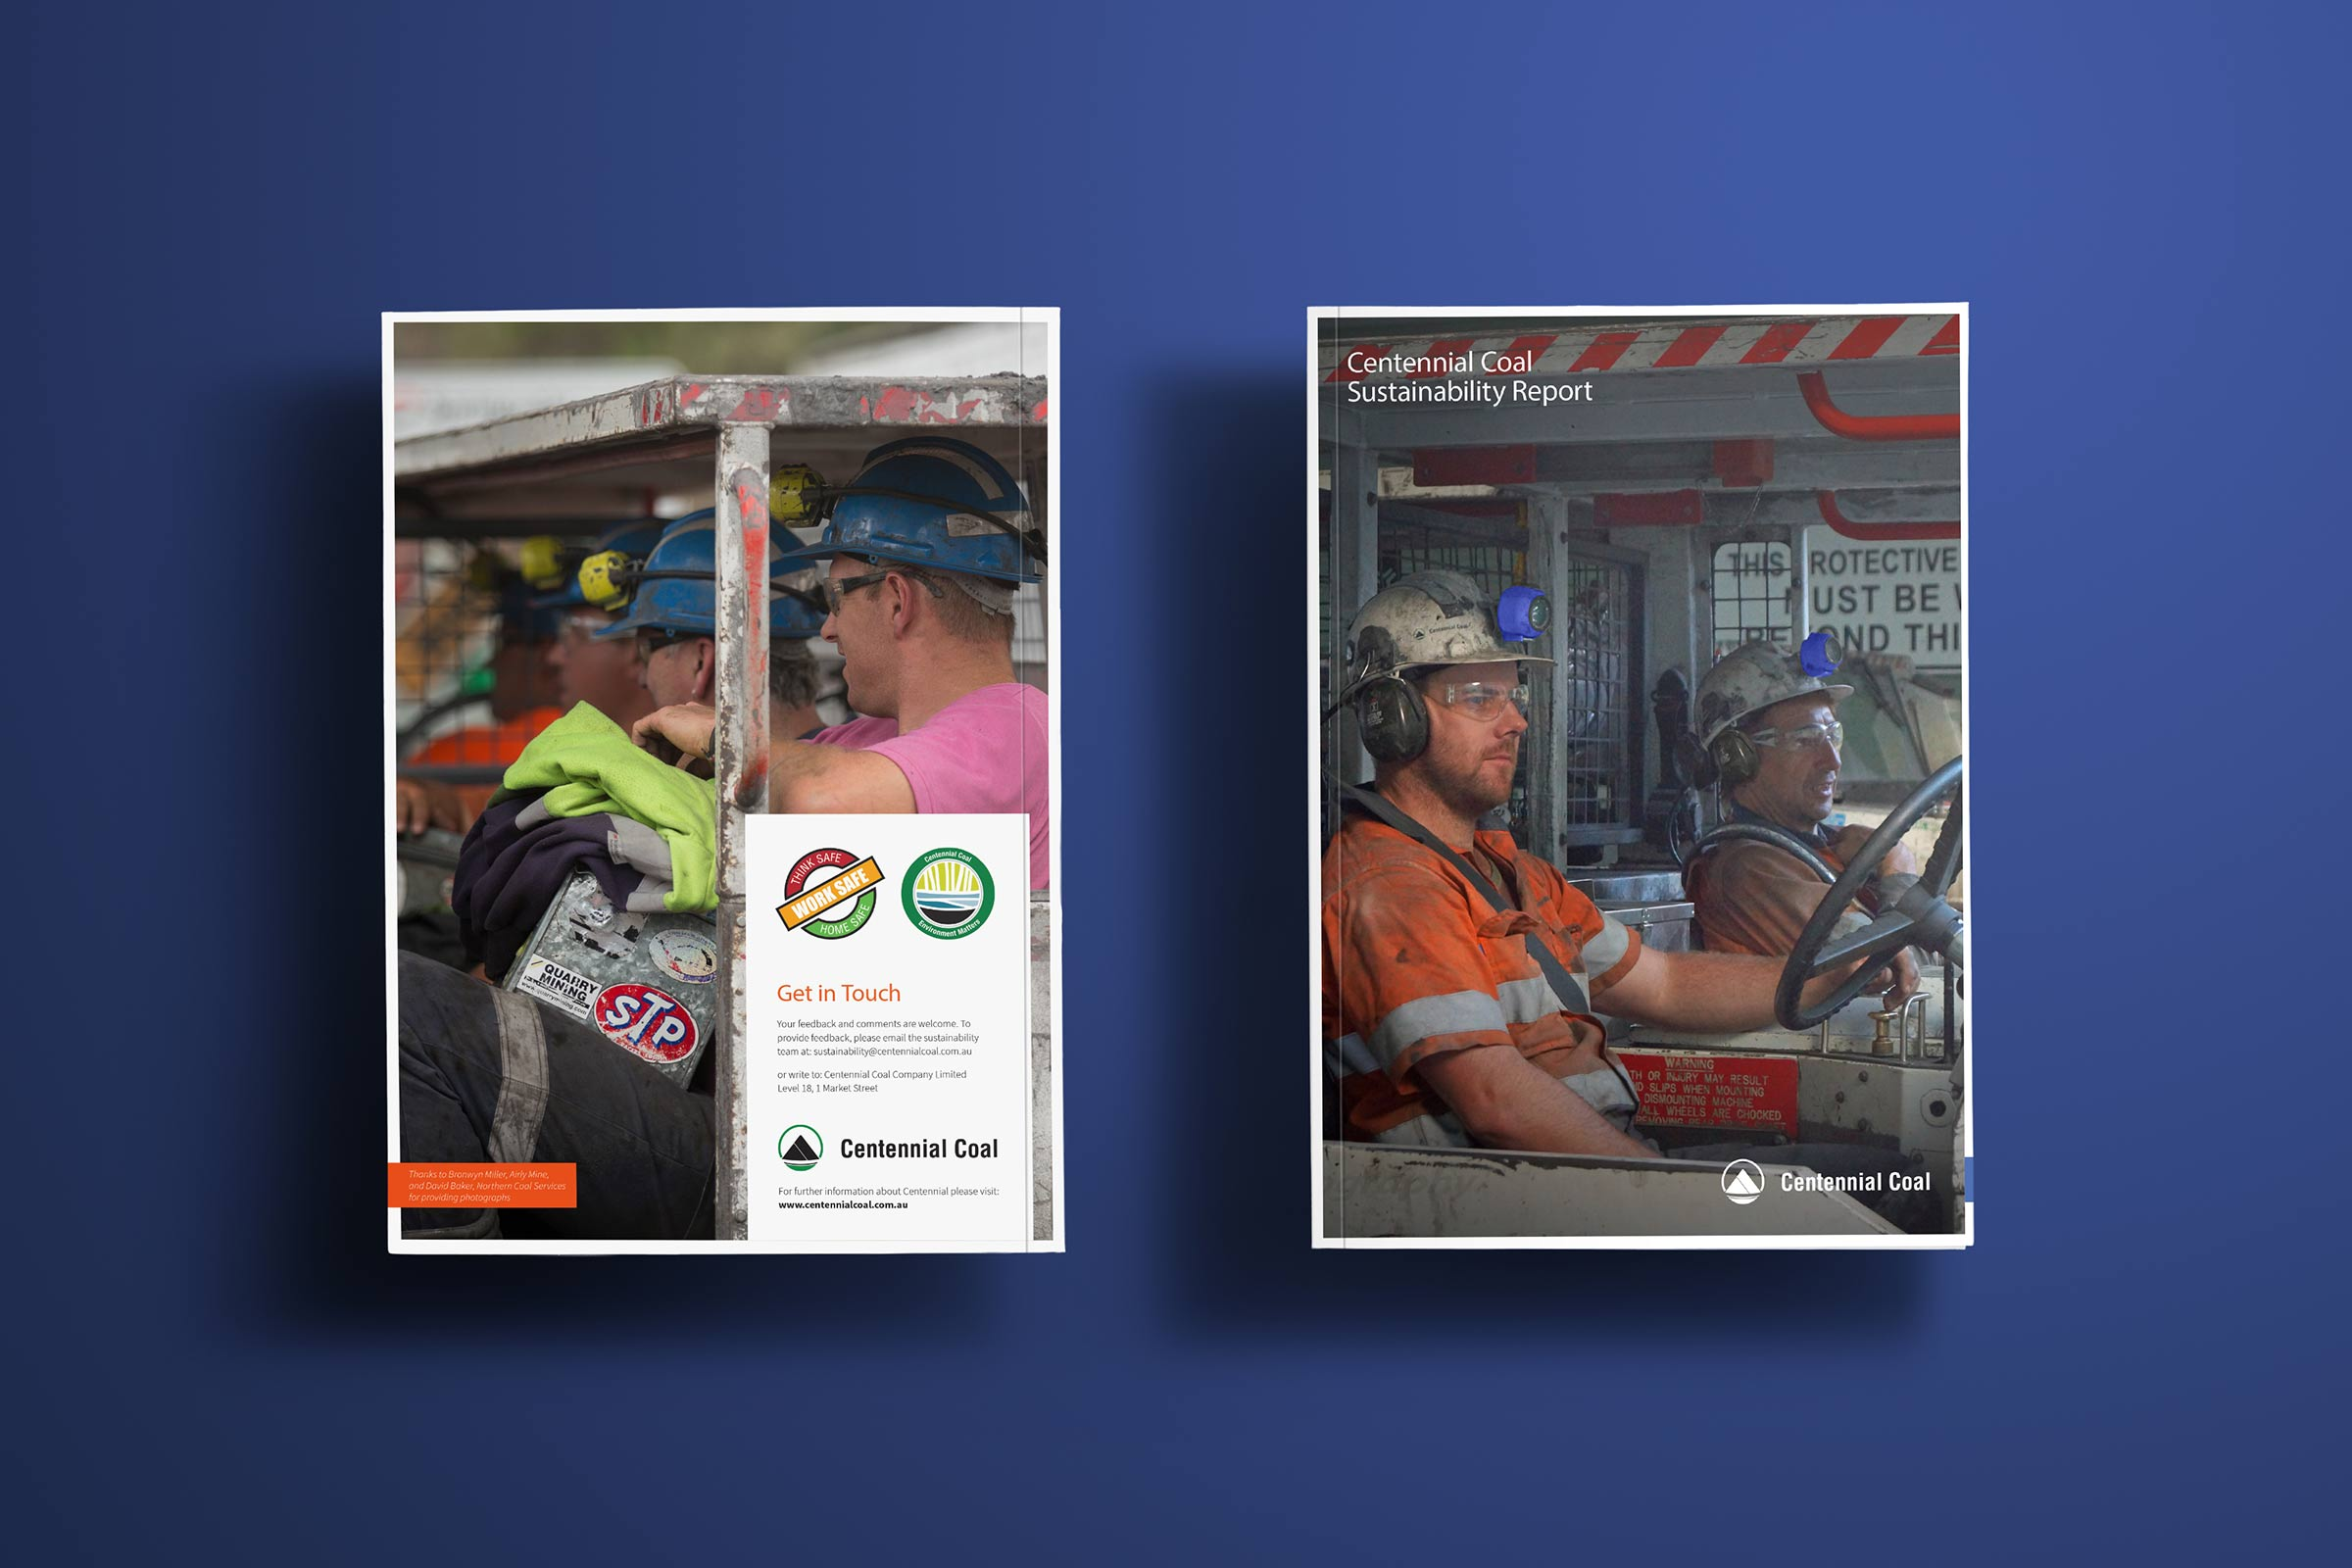 Annual report front and back cover for Centennial Coal. Featuring photographs of coal miners at work.